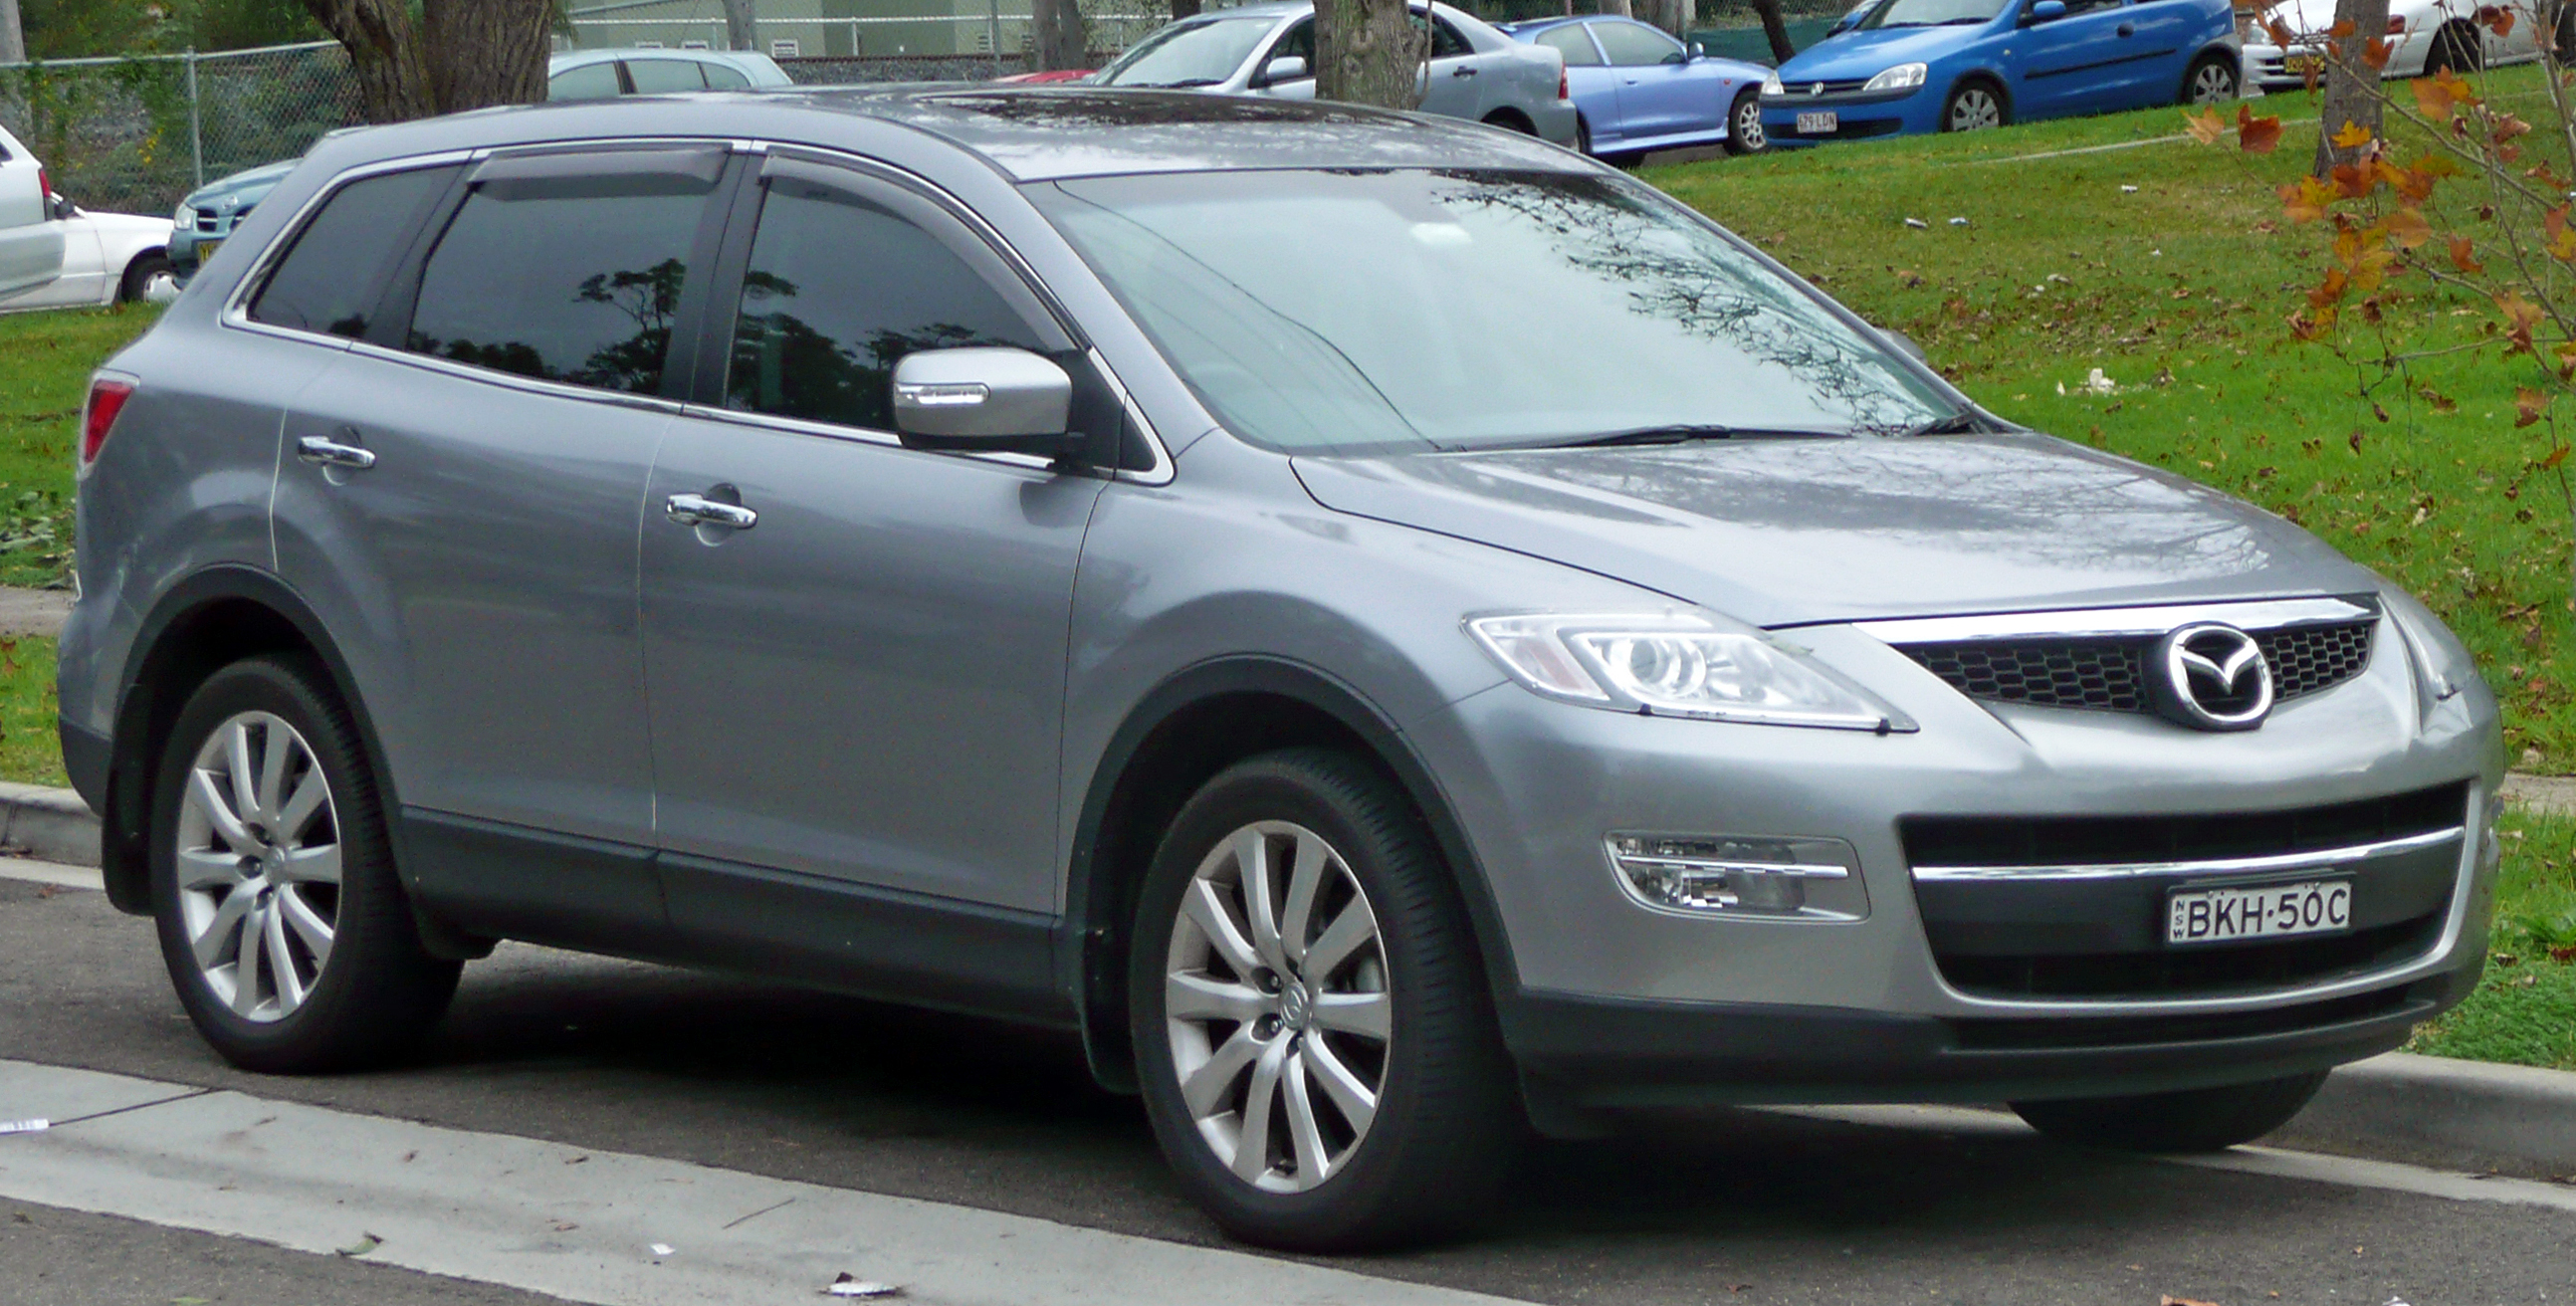 mazda cx 9 2007 review amazing pictures and images look at the car. Black Bedroom Furniture Sets. Home Design Ideas